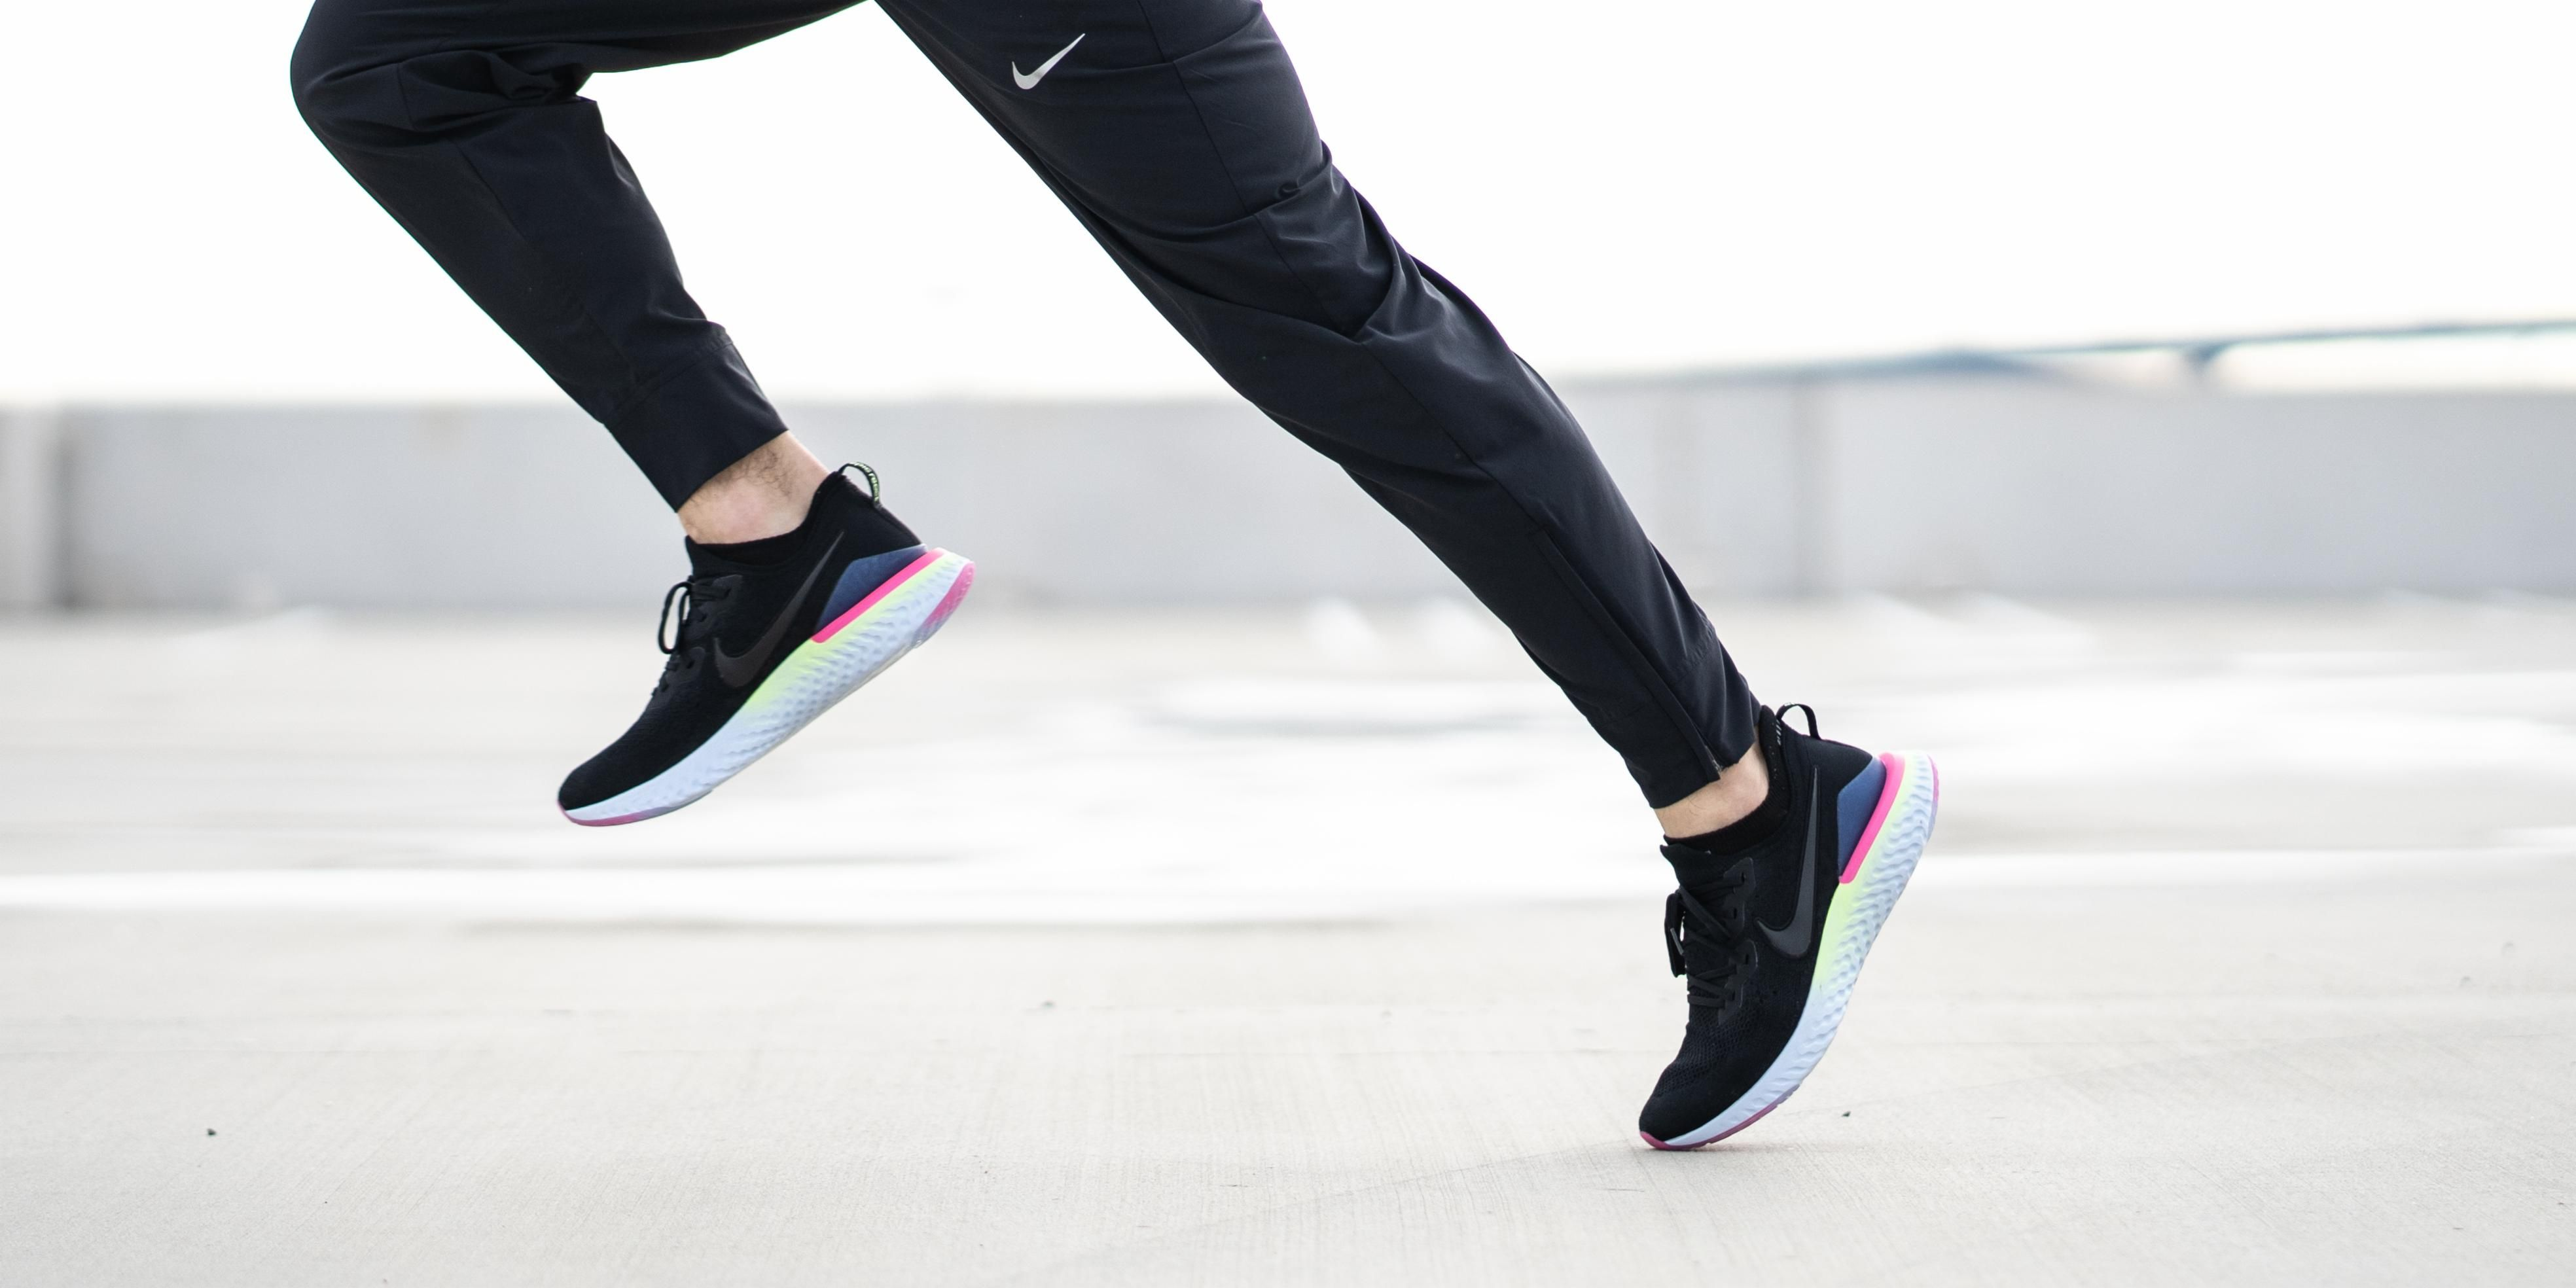 a65c4f0a6d Nike Epic React Flyknit 2 Review: Put the Glide Back in Your Stride with a  Touch of 90's Style